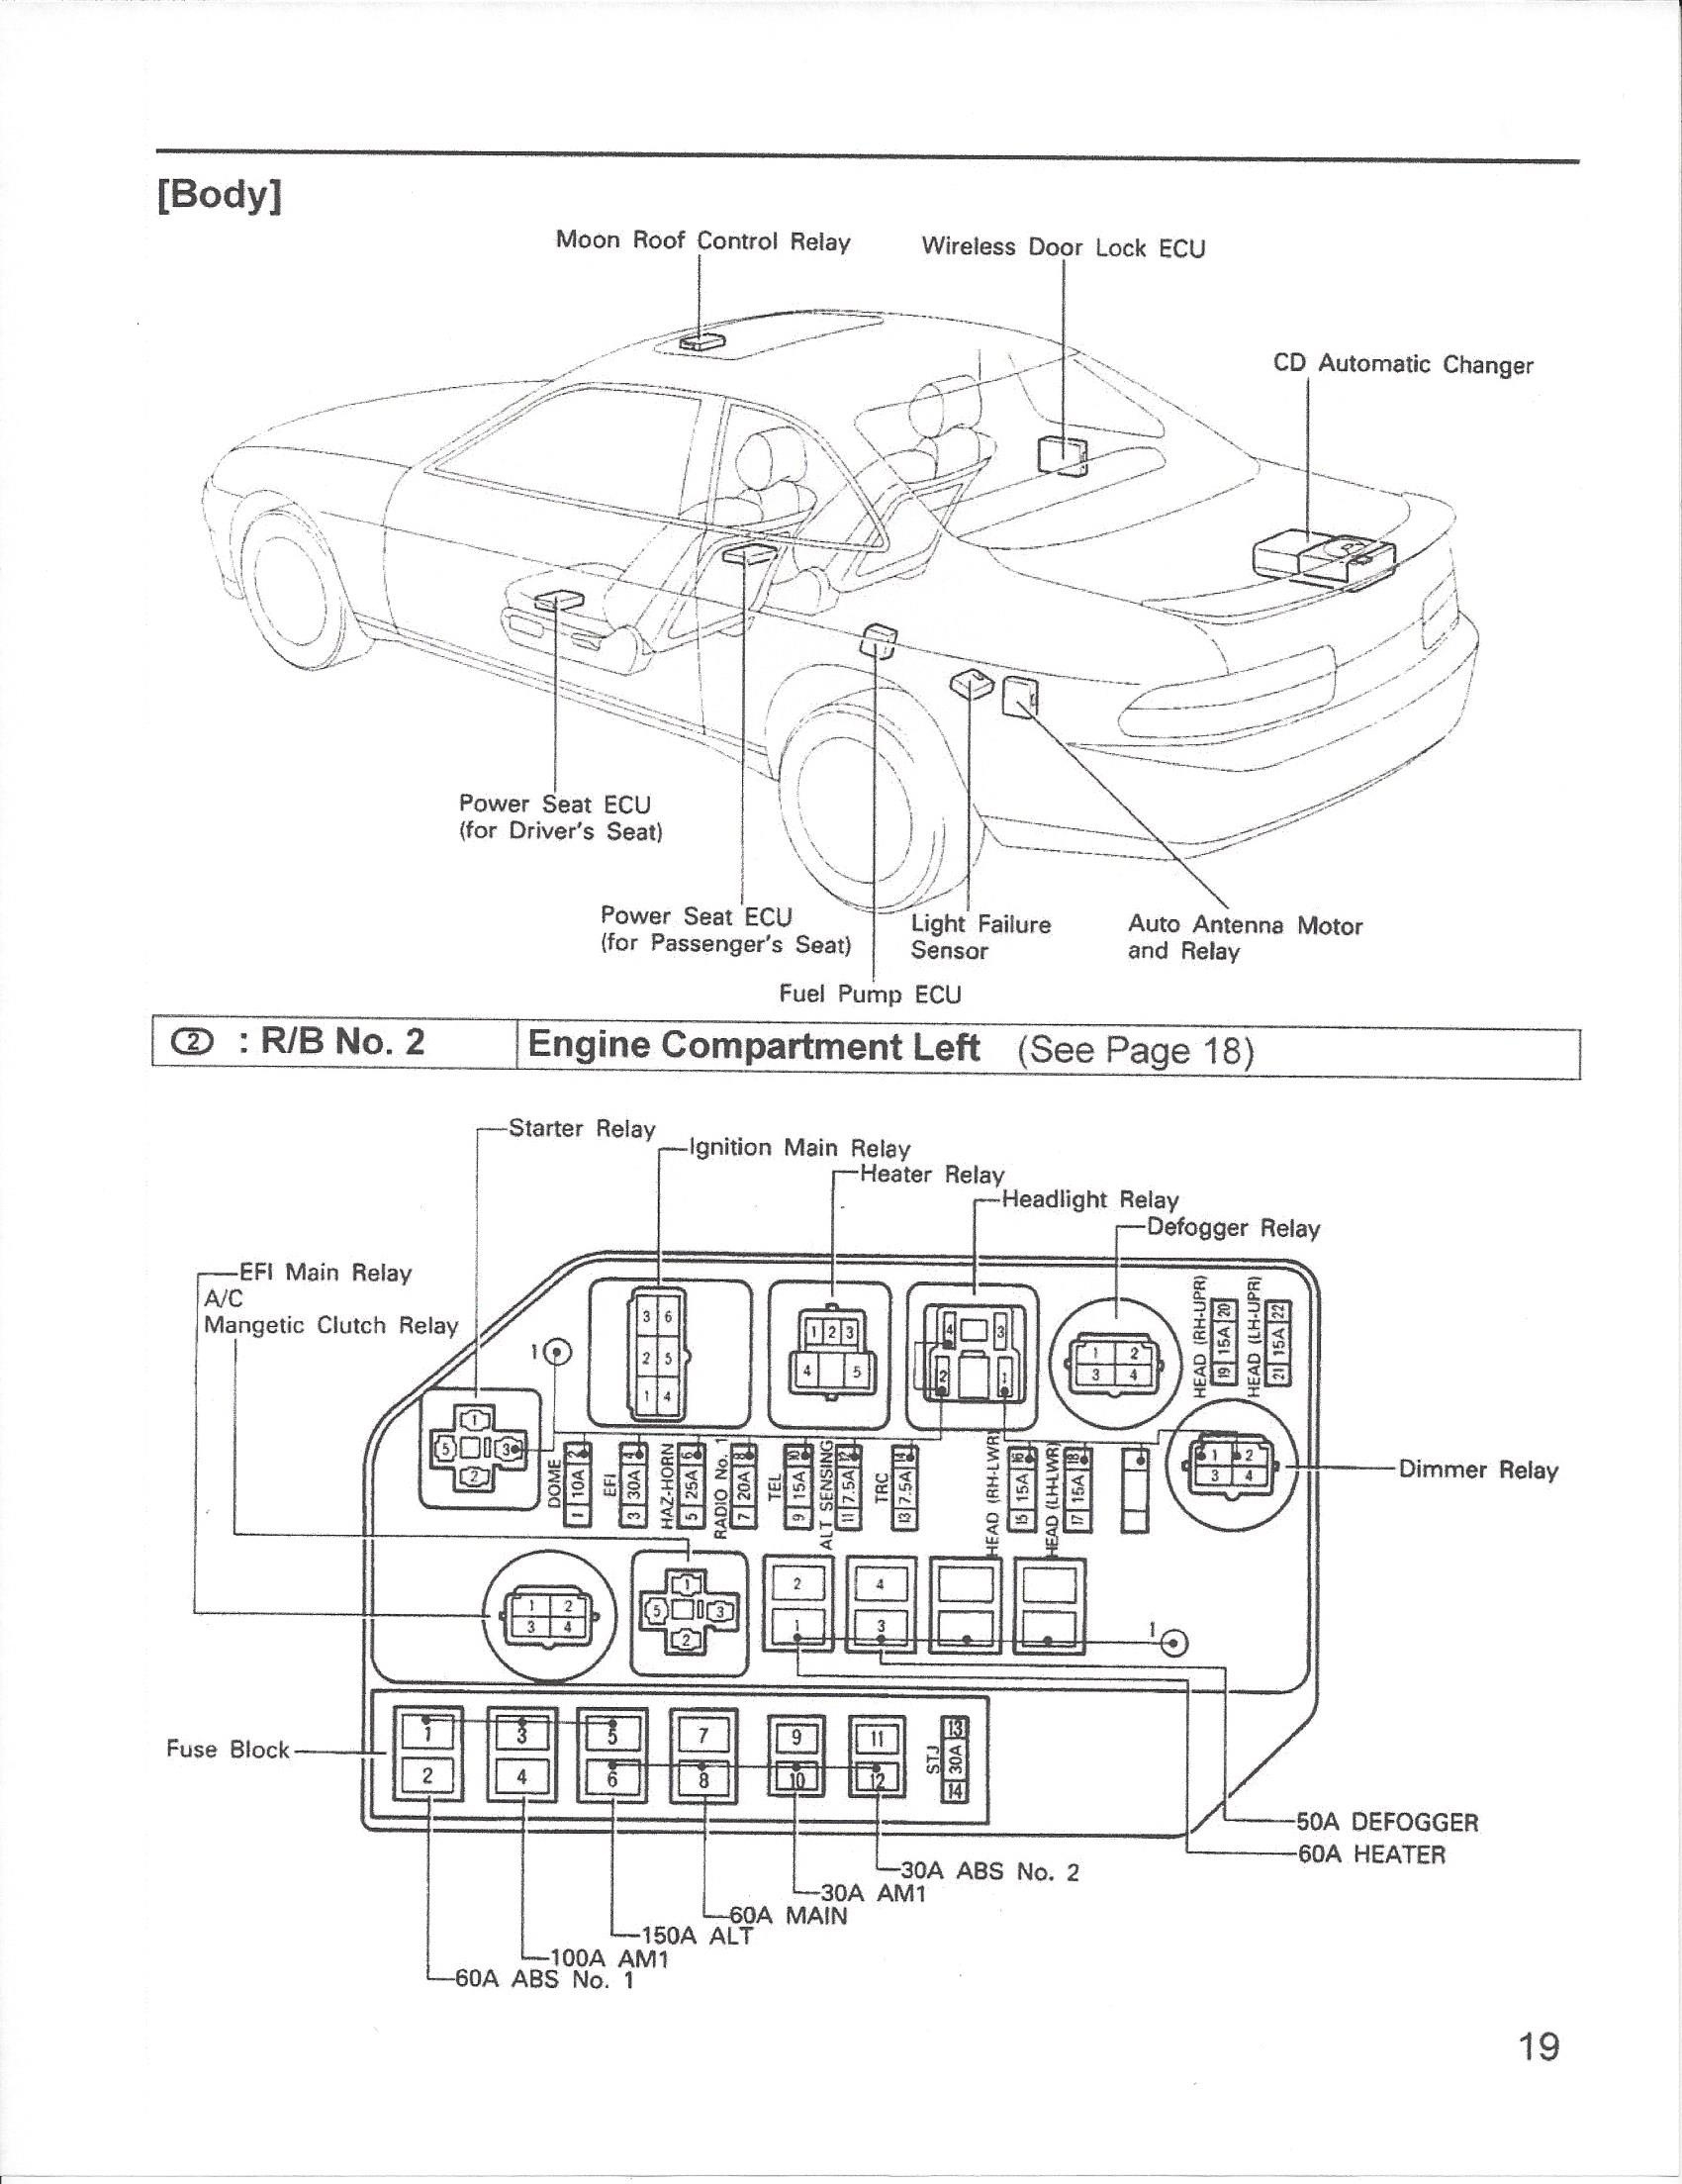 2002 Lexus Is300 Fuse Panel. Lexus. Auto Fuse Box Diagram